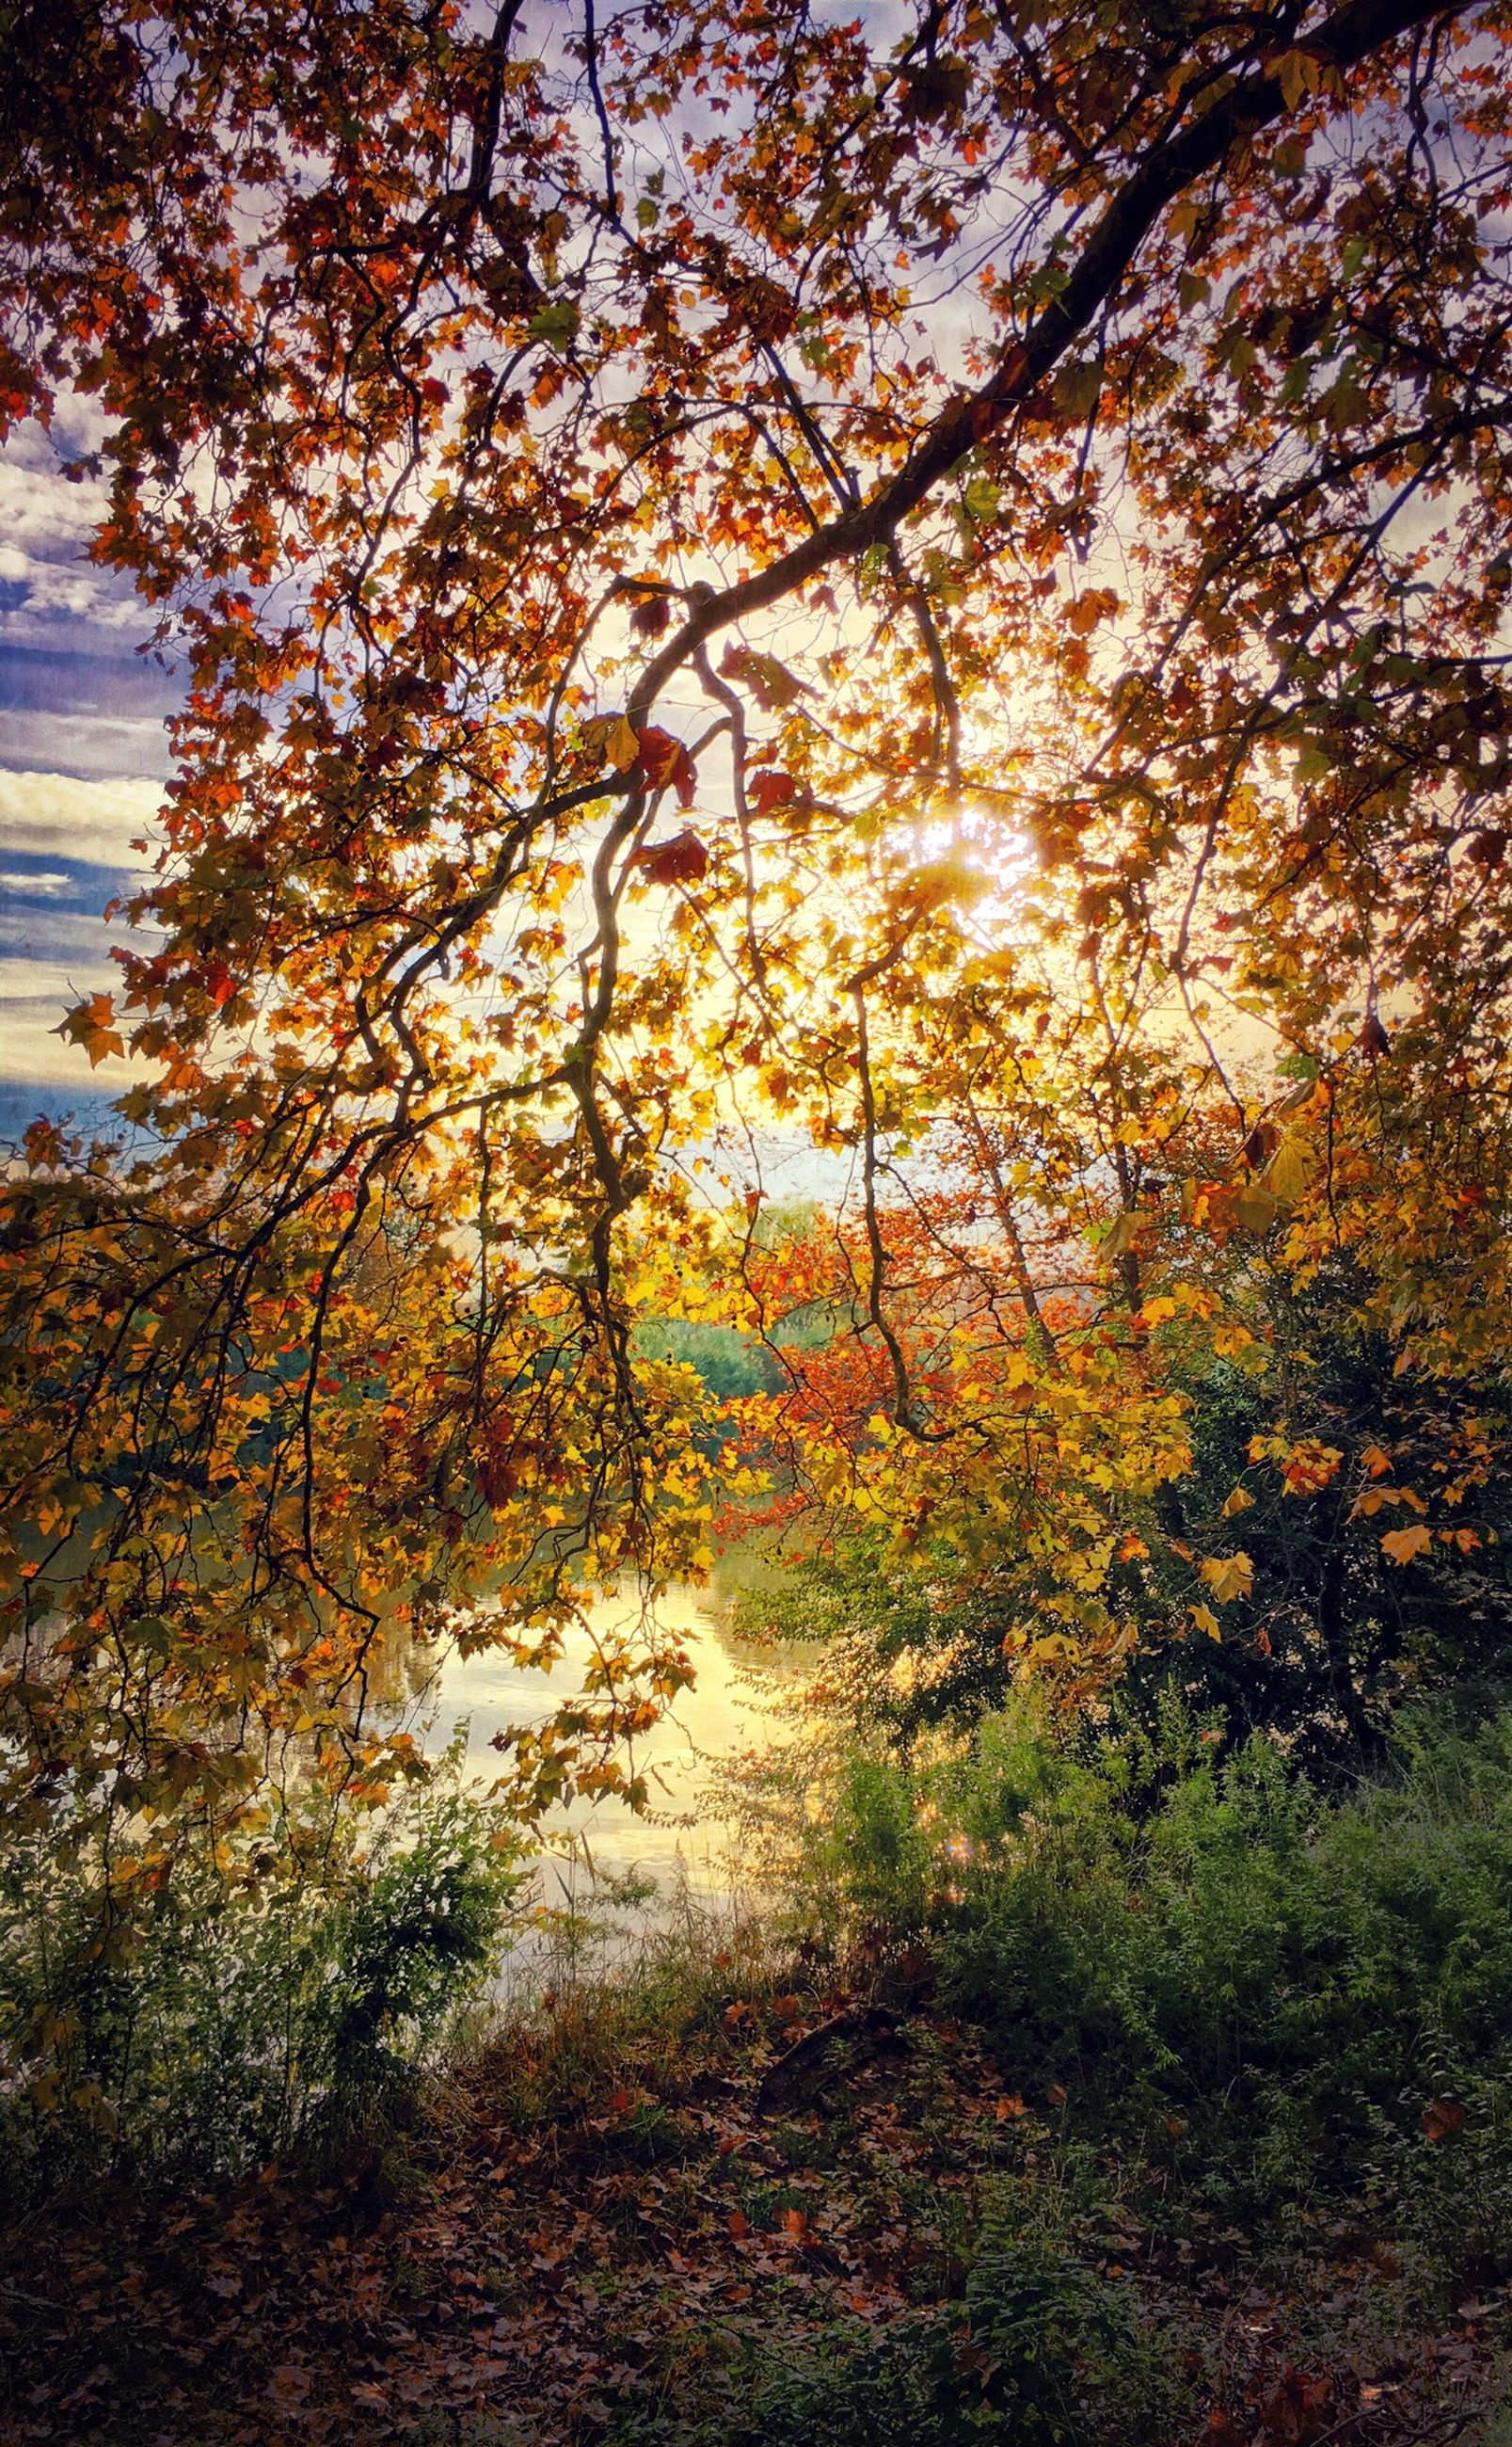 tree, tranquility, autumn, growth, beauty in nature, nature, tranquil scene, branch, season, scenics, change, sunlight, leaf, orange color, outdoors, no people, day, non-urban scene, forest, plant